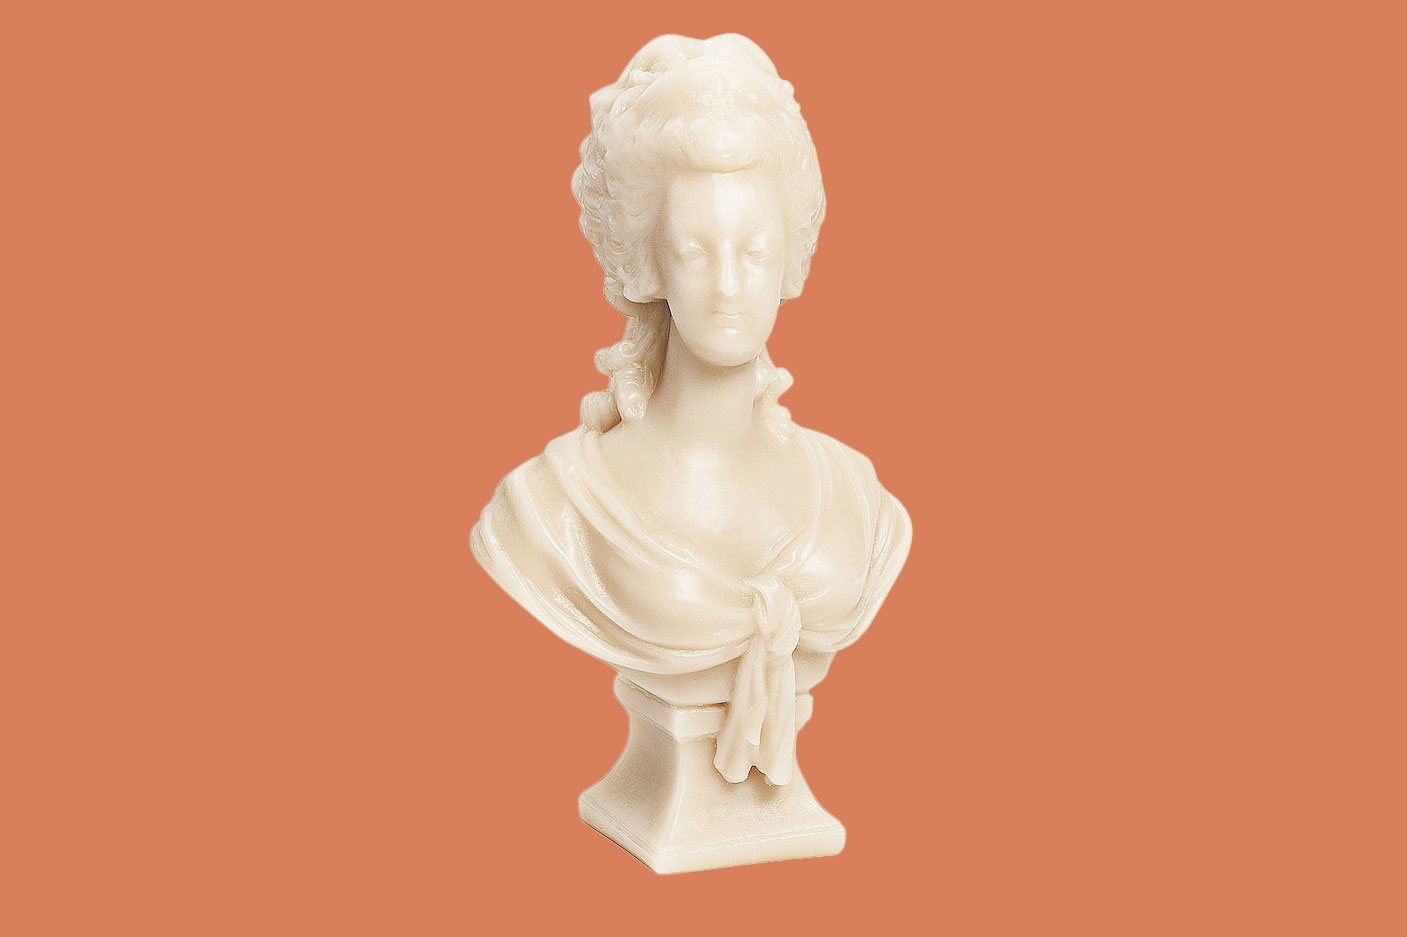 Cire Trudon Marie Antoinette Bust